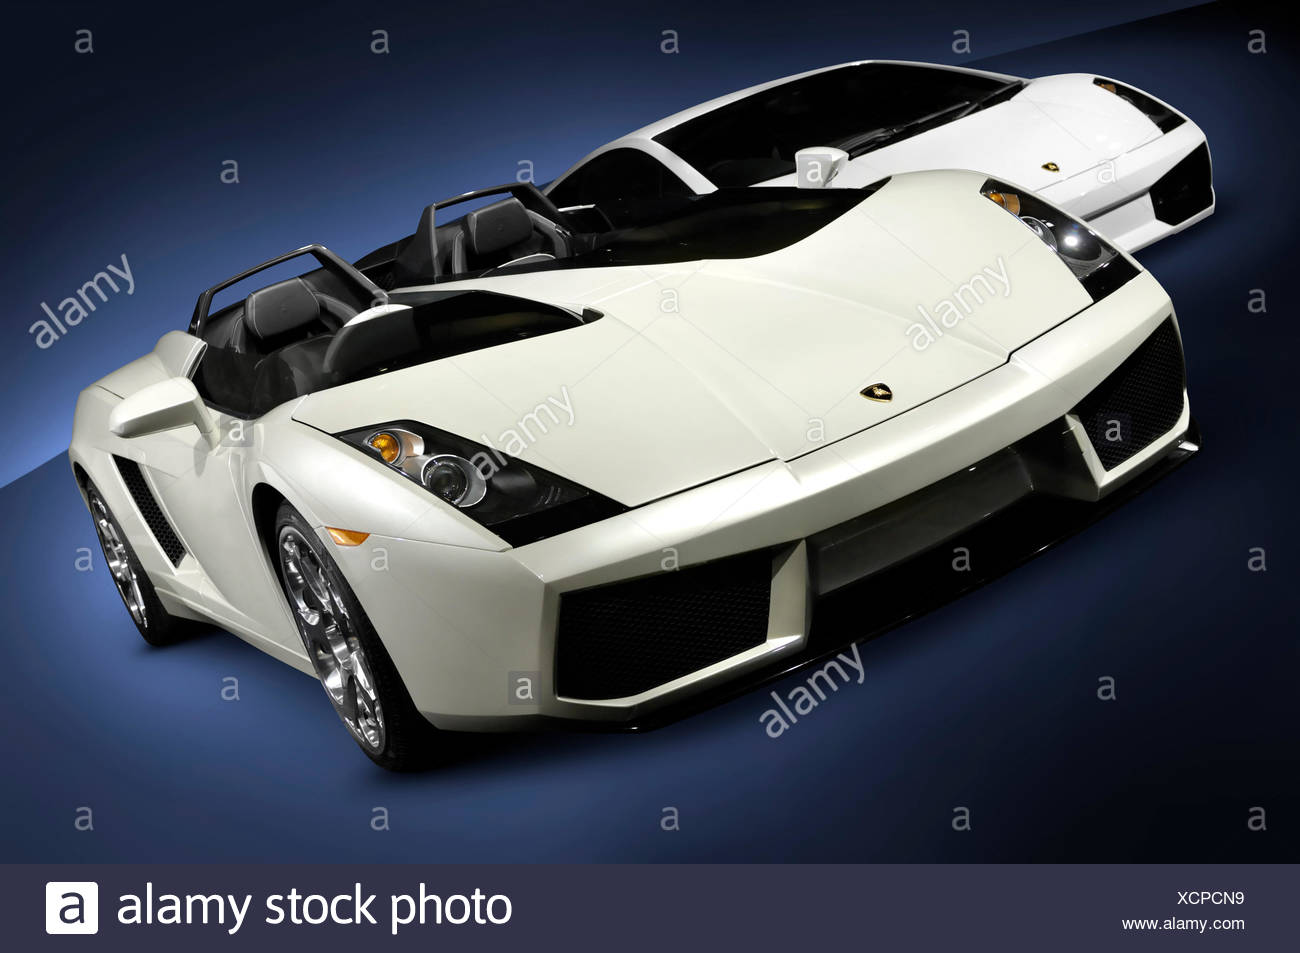 lamborghini super cars 2005 concept s and 2007 gallardo superleggera